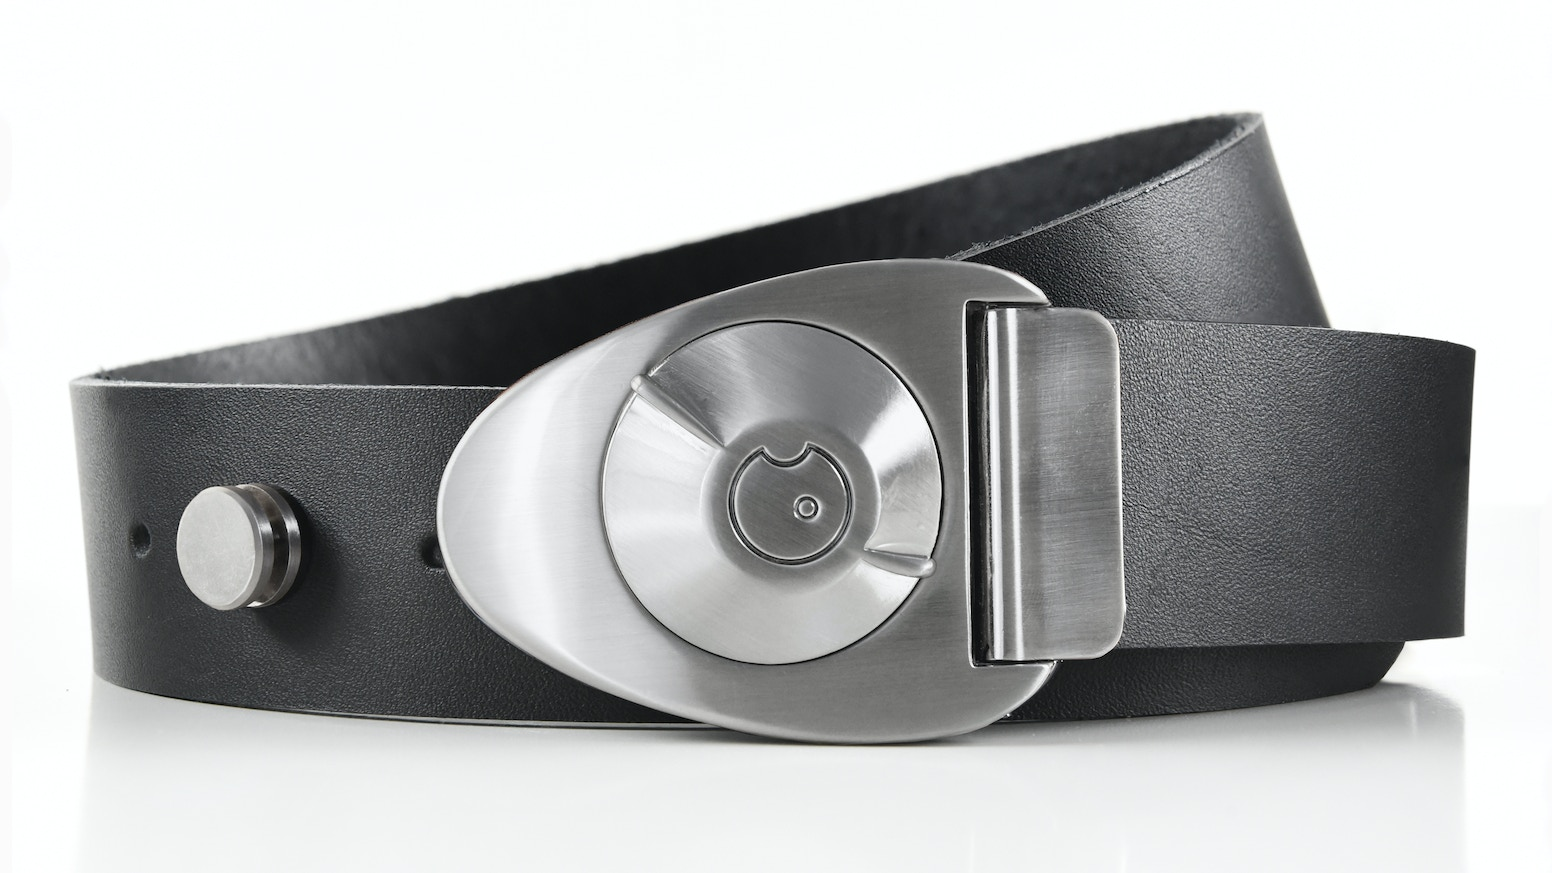 We make mechanical buckles with out of this world style! Simply turn the dial to open your belt. Hand-cut leather from Milwaukee, WI.